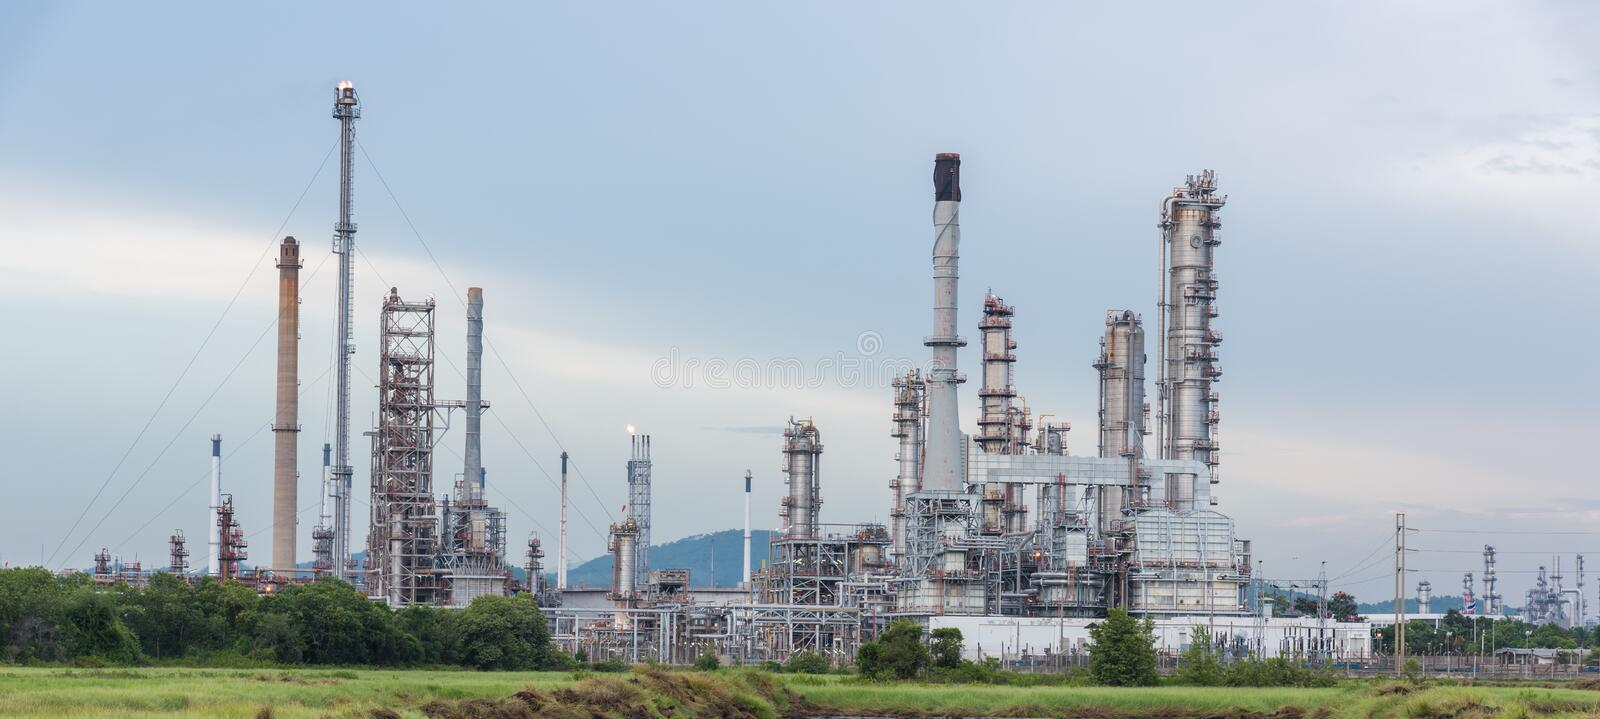 Petrochemical, Petroleum, oil refinery. Plant at day time royalty free stock image